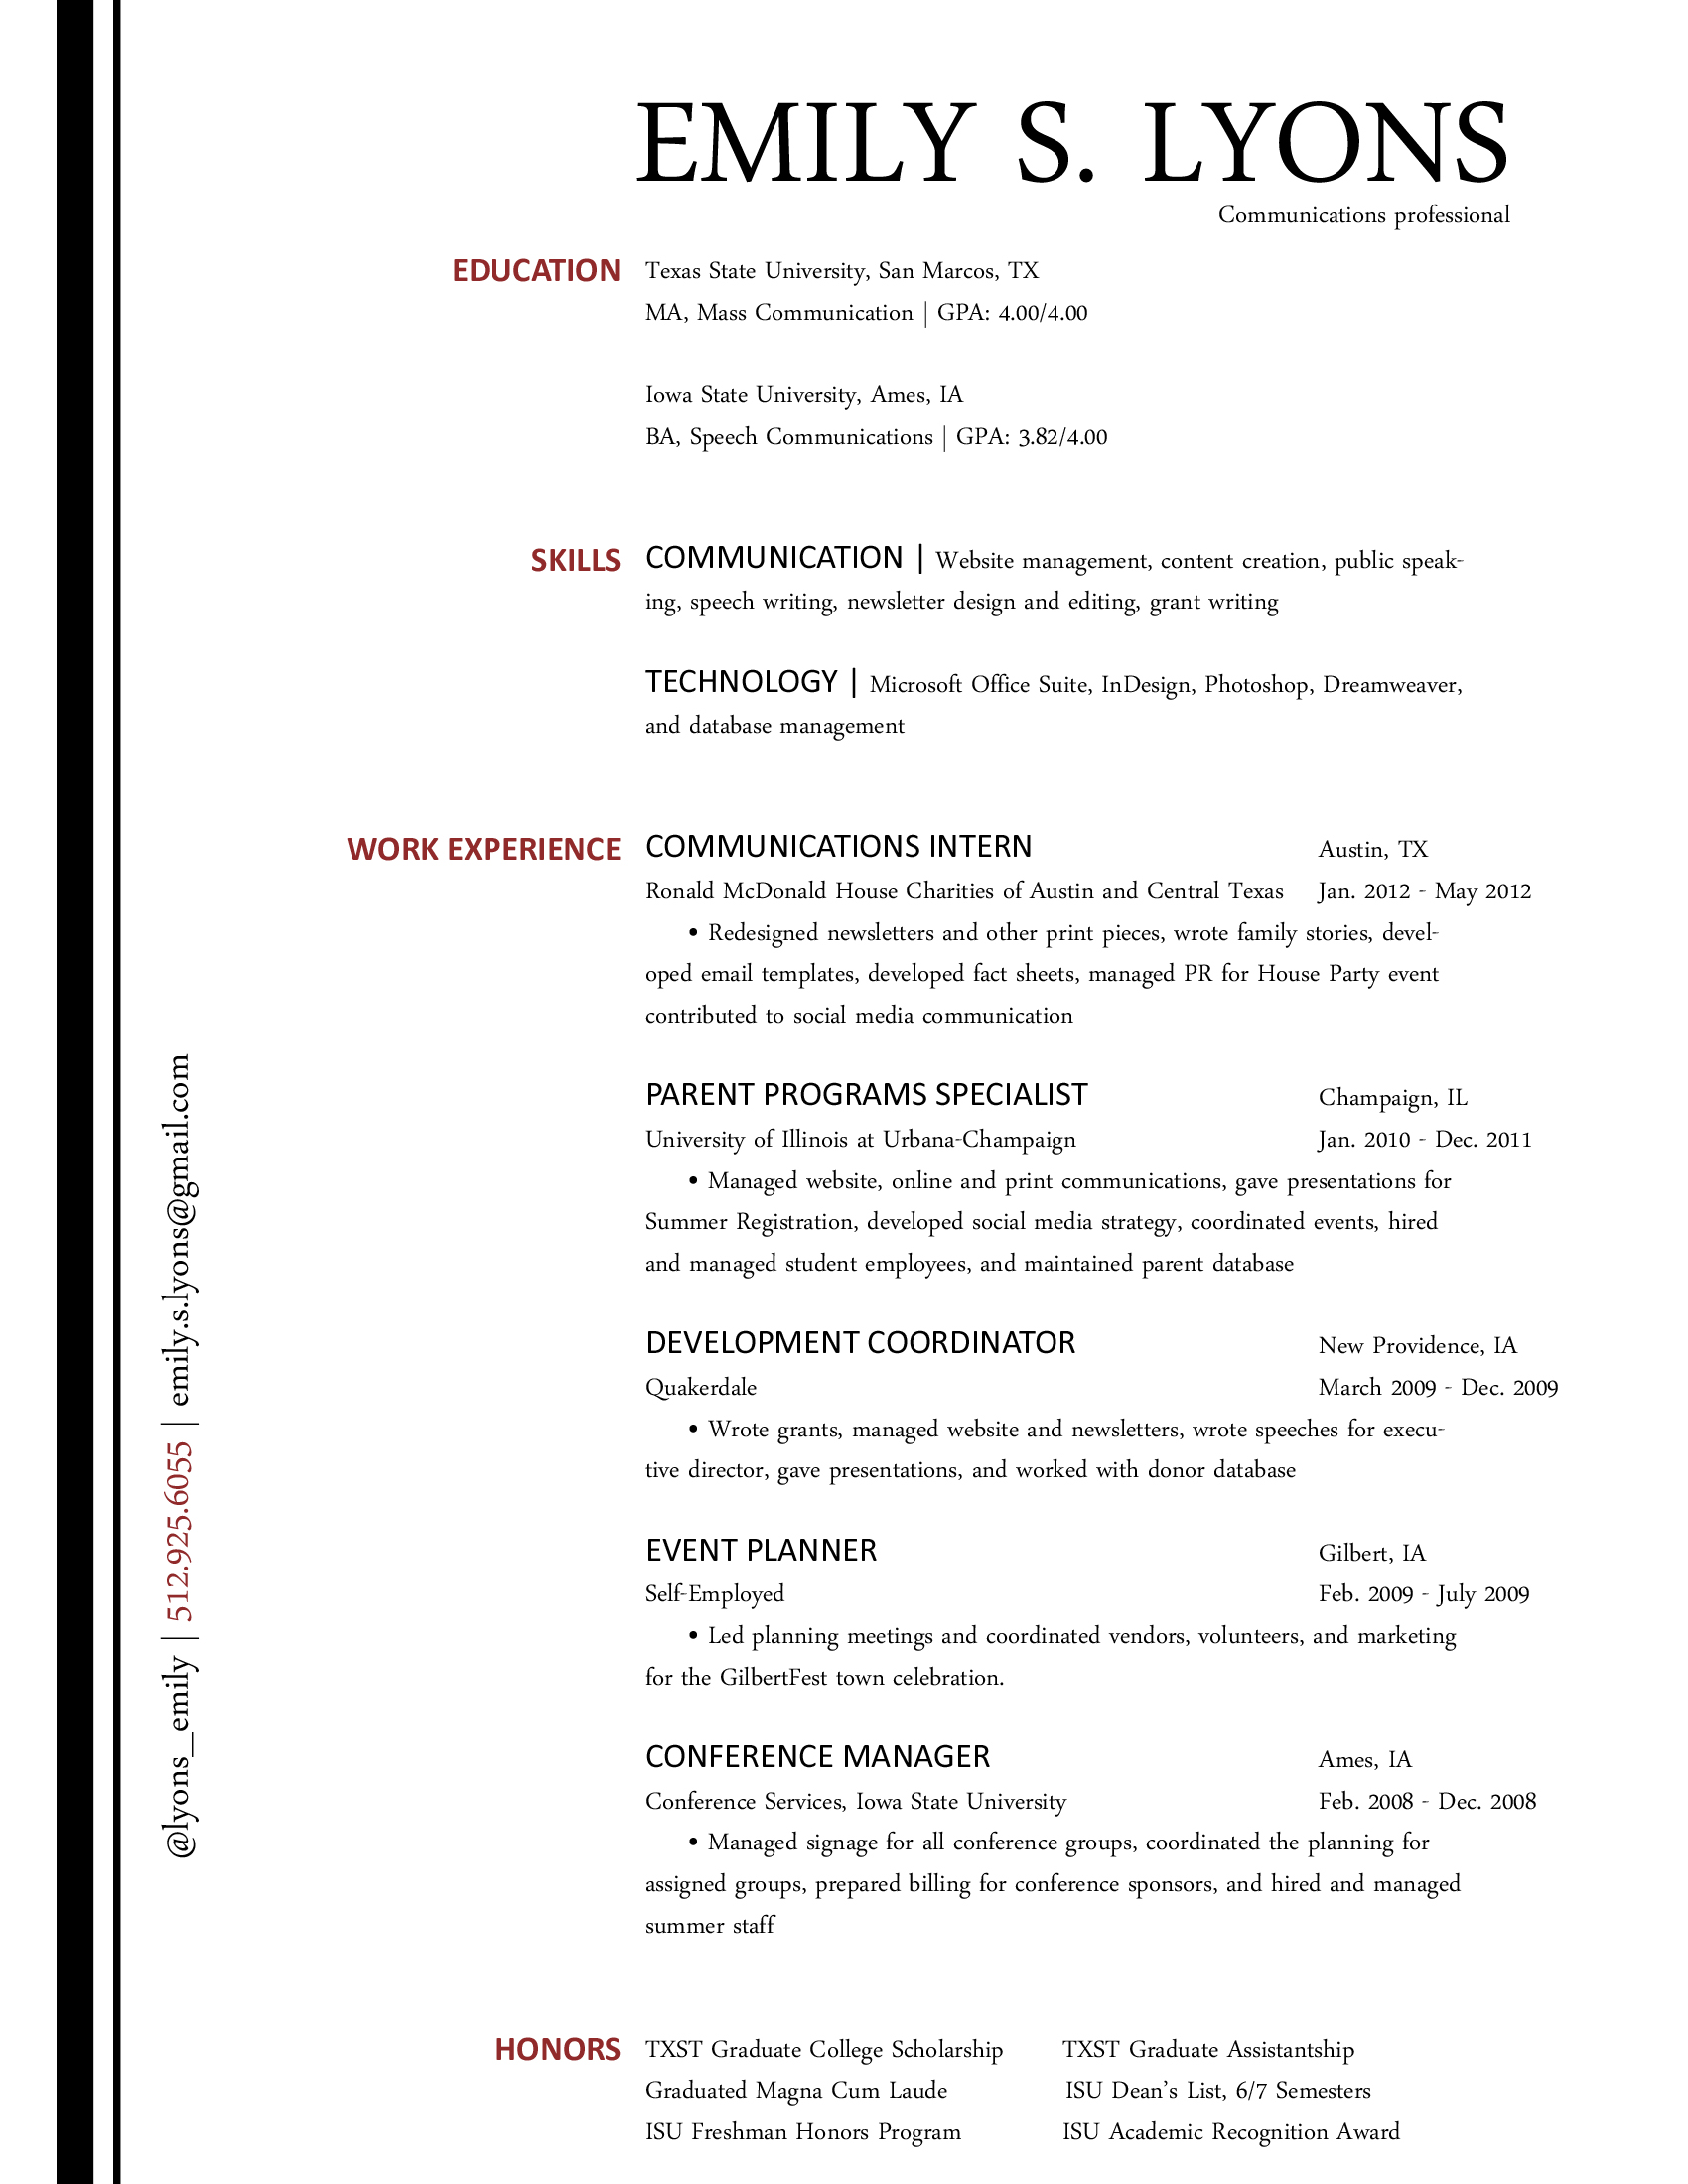 Food Service Resume Examples   Resume Format Download Pdf nurse resume sample  cover letter for i      sample resume for it